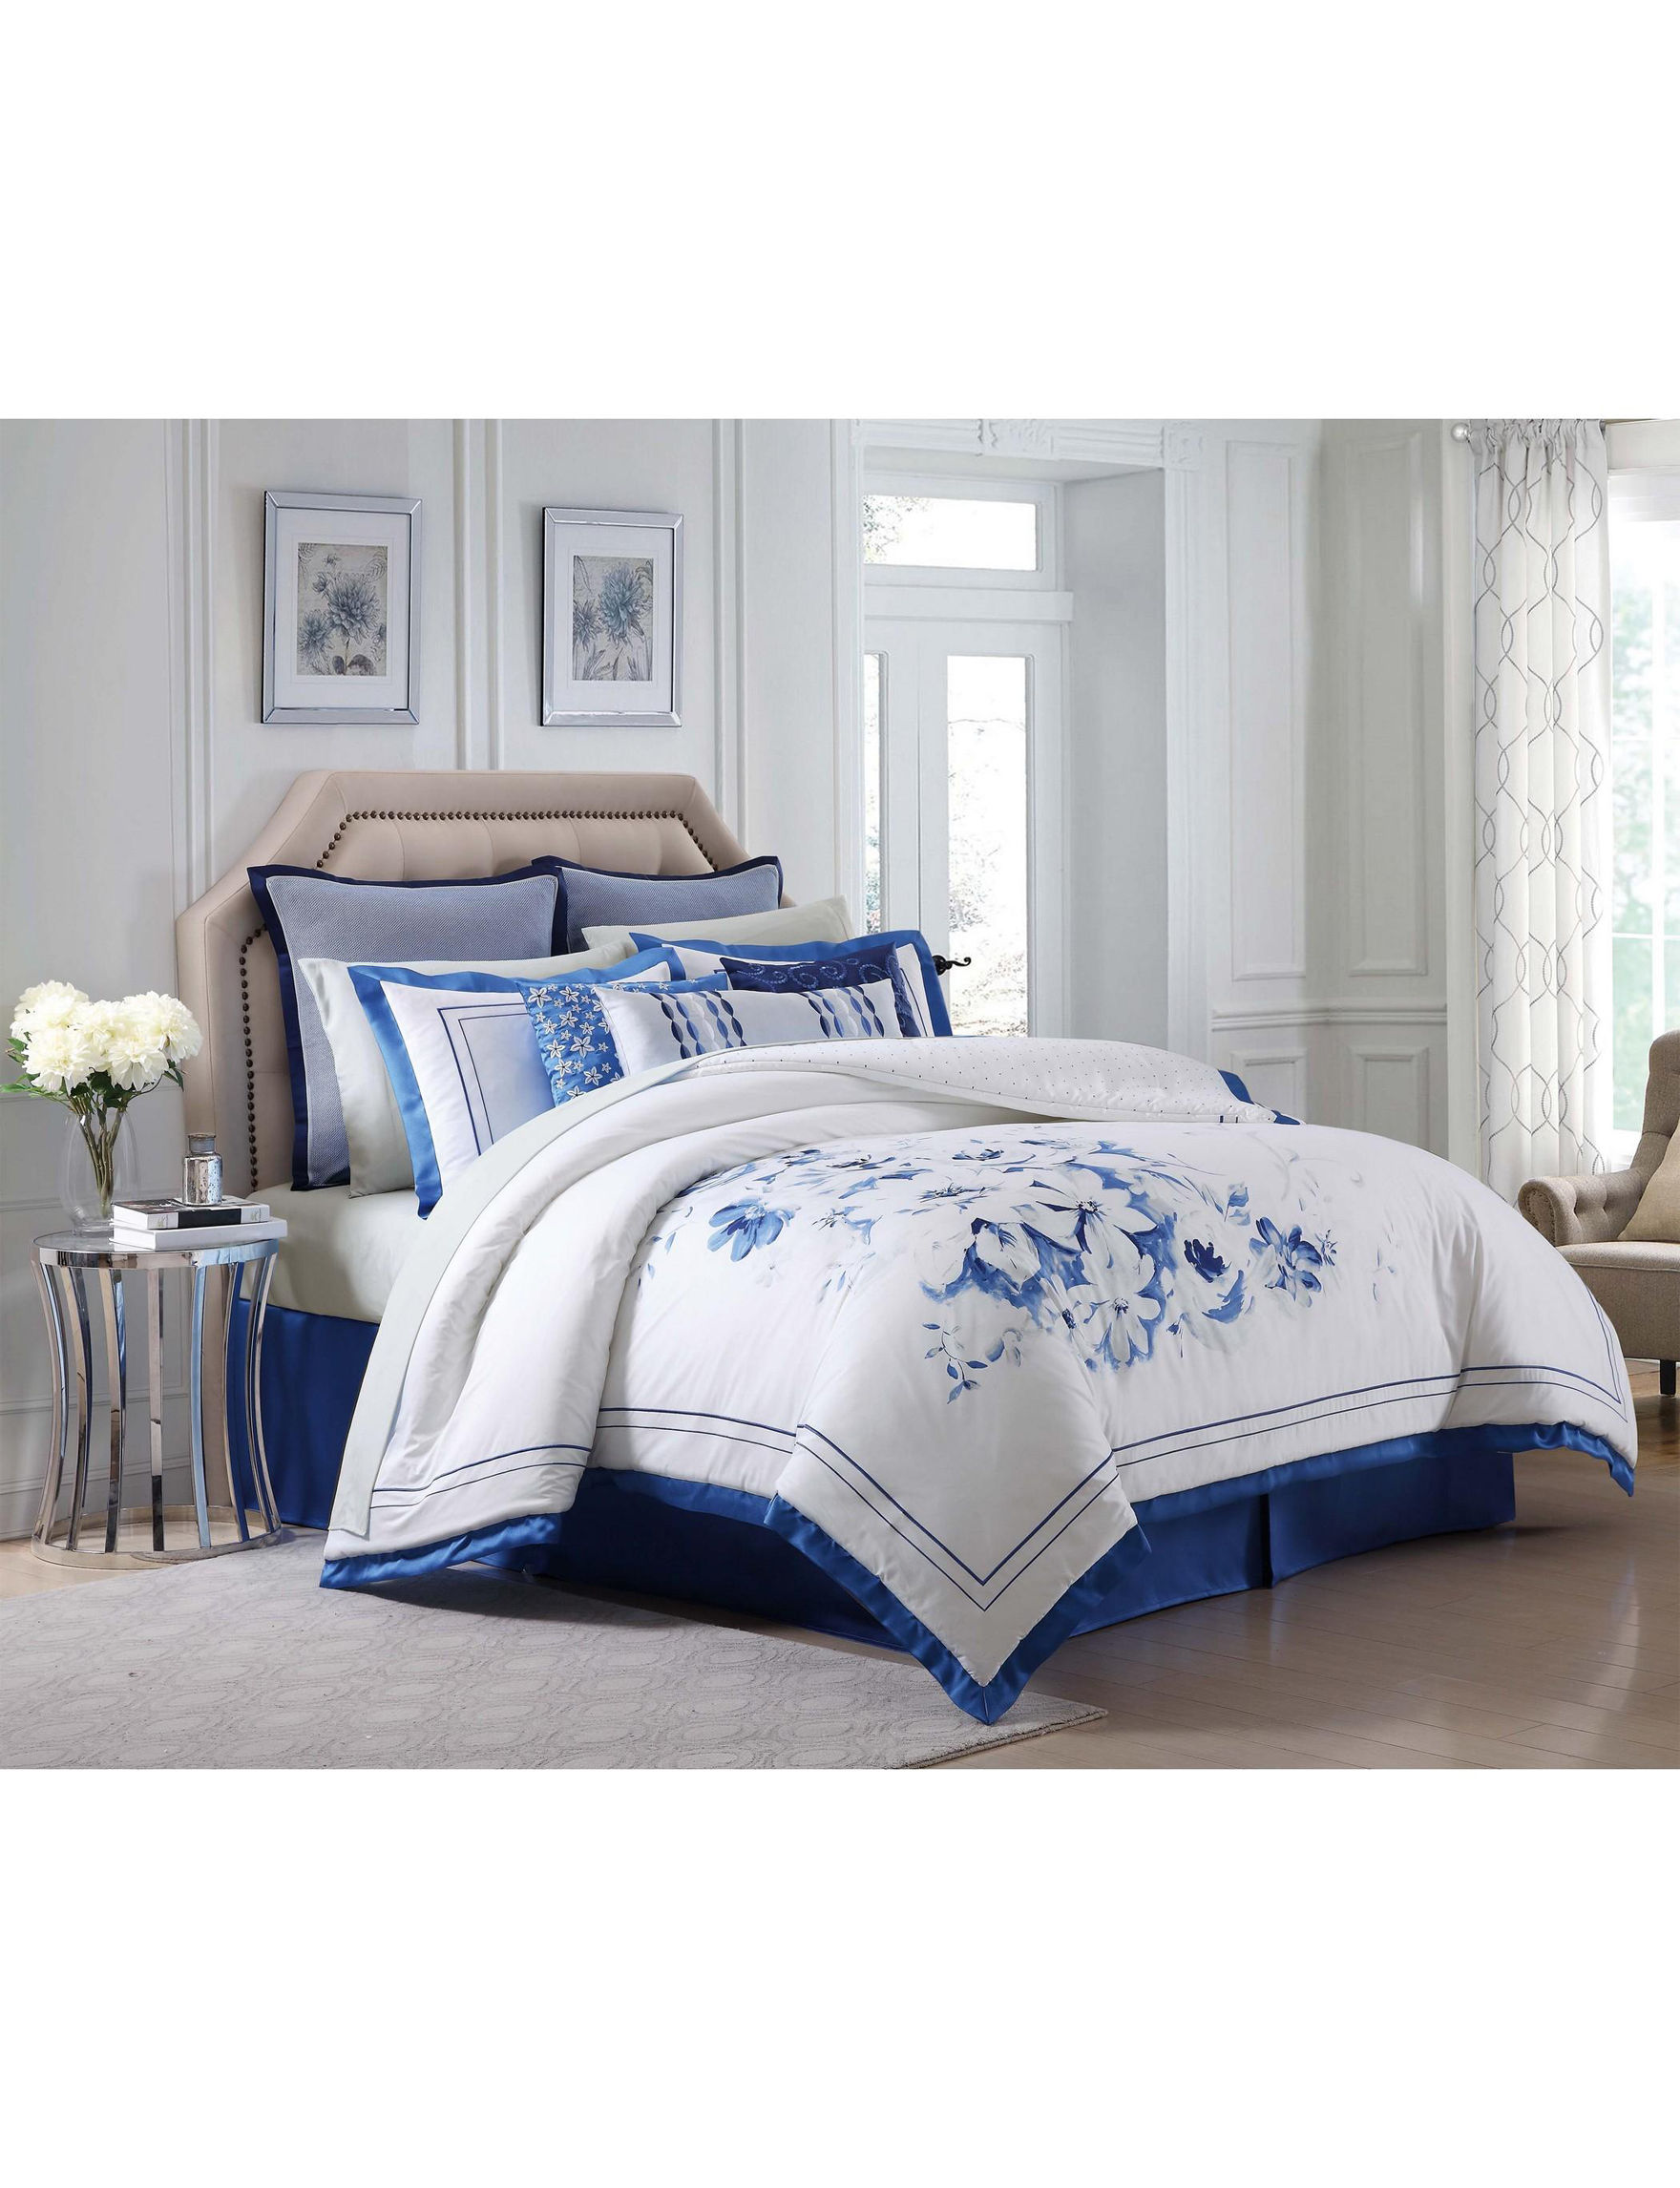 Charisma White / Blue Comforters & Comforter Sets